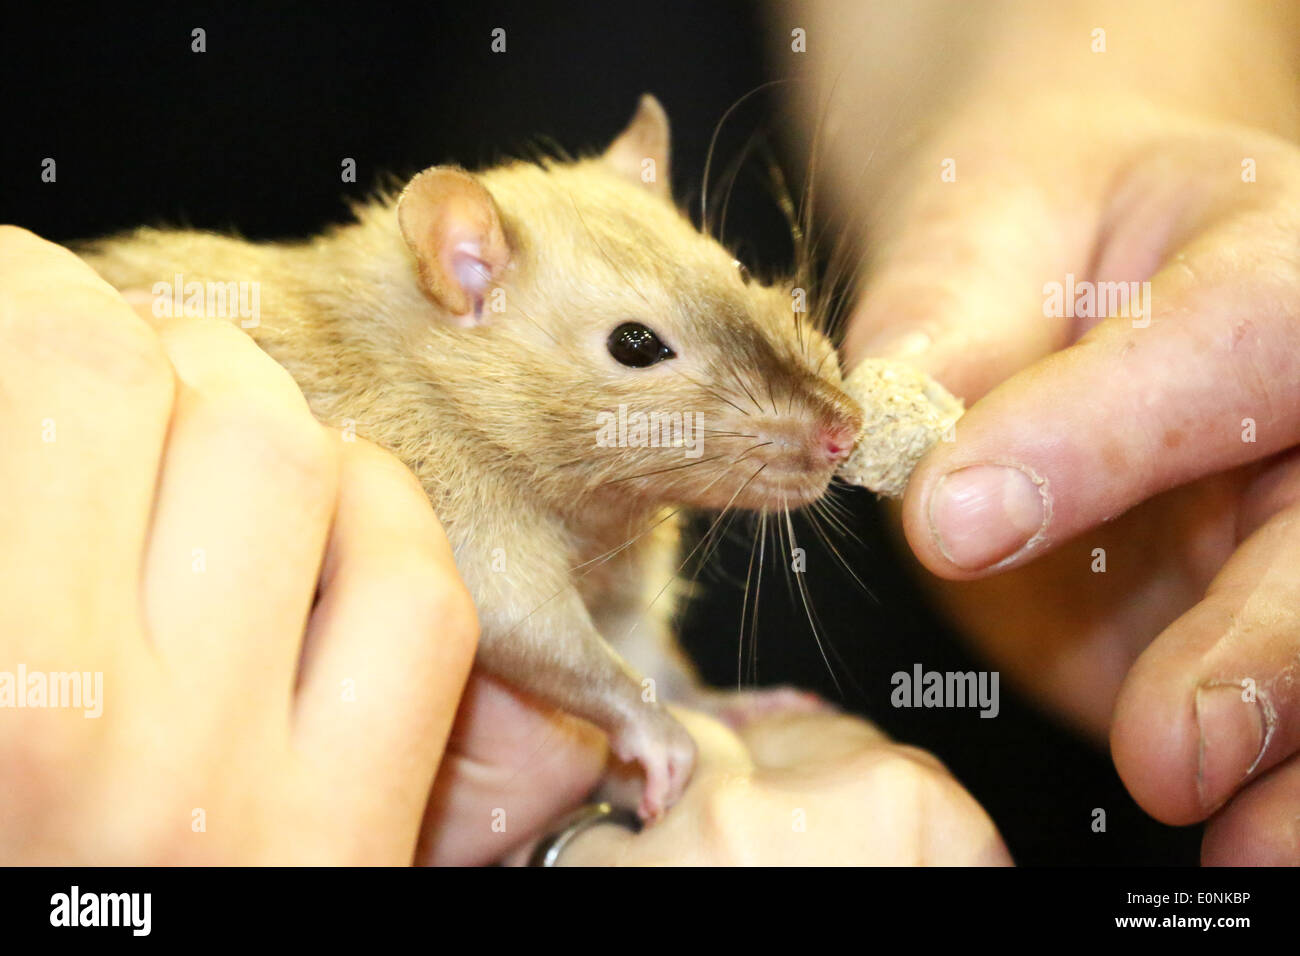 London, UK. 17th May 2014. A rat enjoys a tasty treat at the London Pet Show, Earls Court, London. Credit:  Paul Brown/Alamy Live News - Stock Image